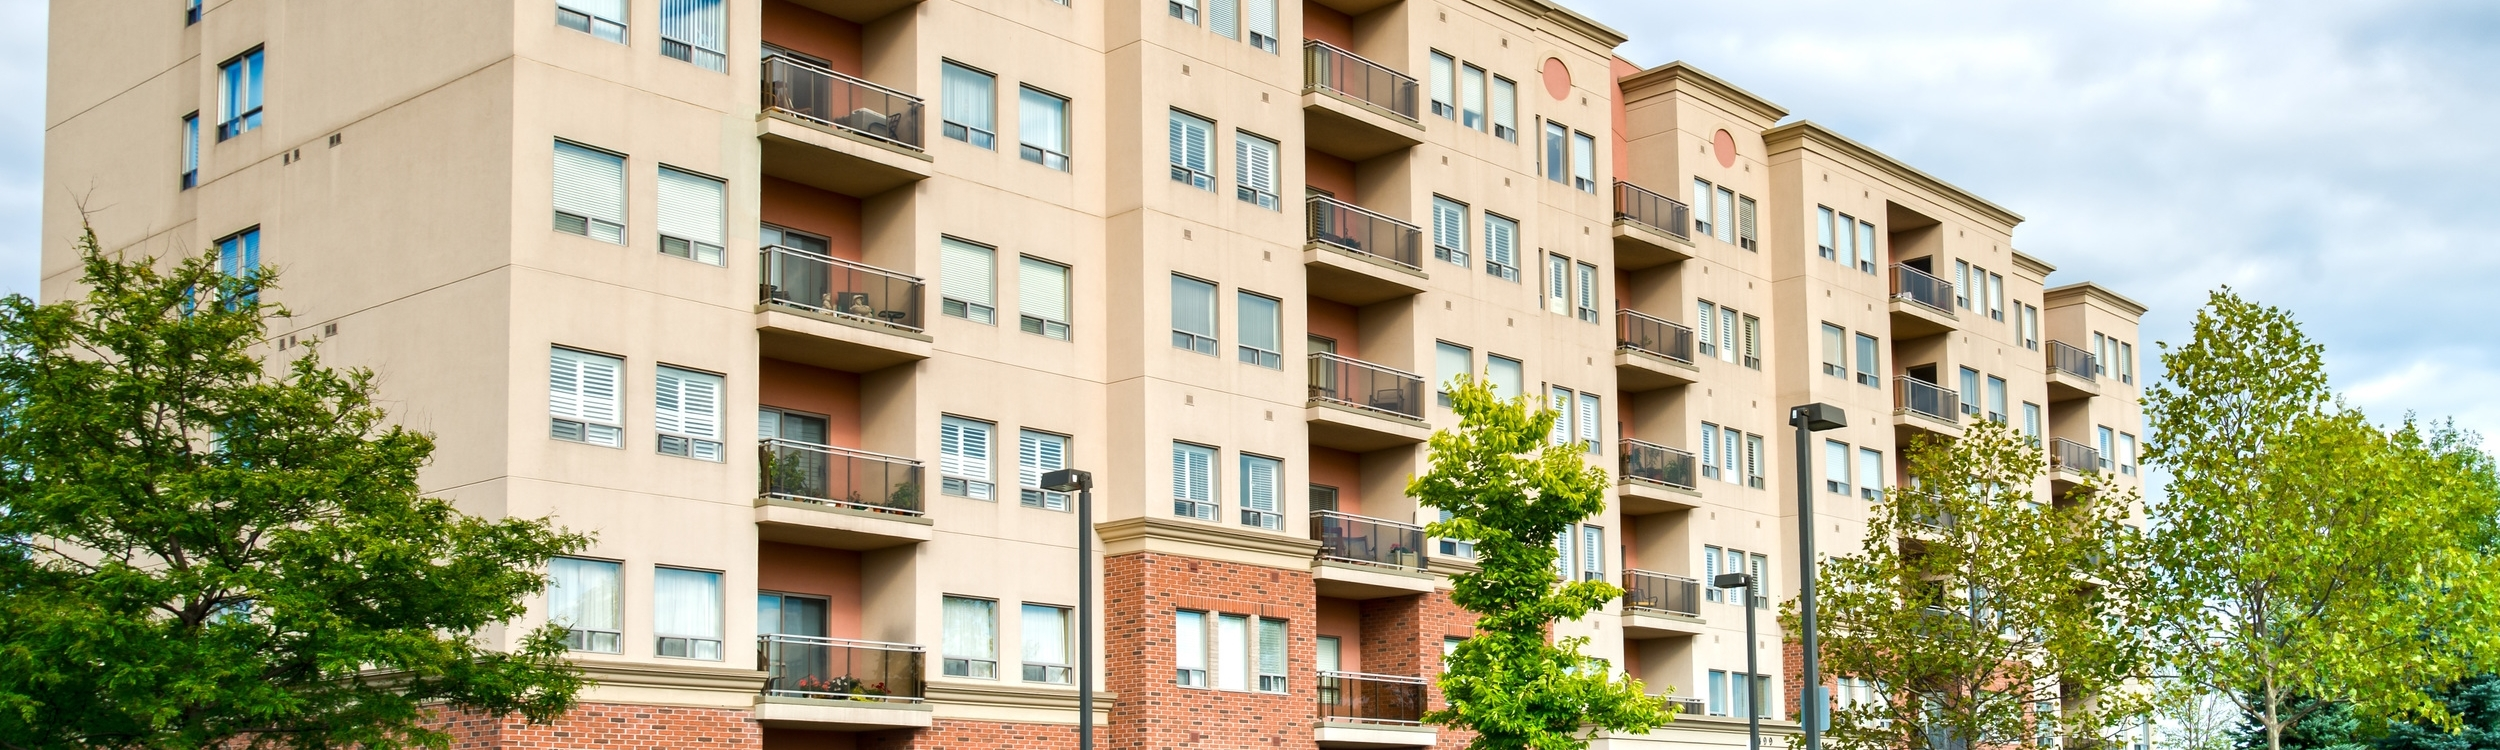 We manage over 2500 residential units and growing!